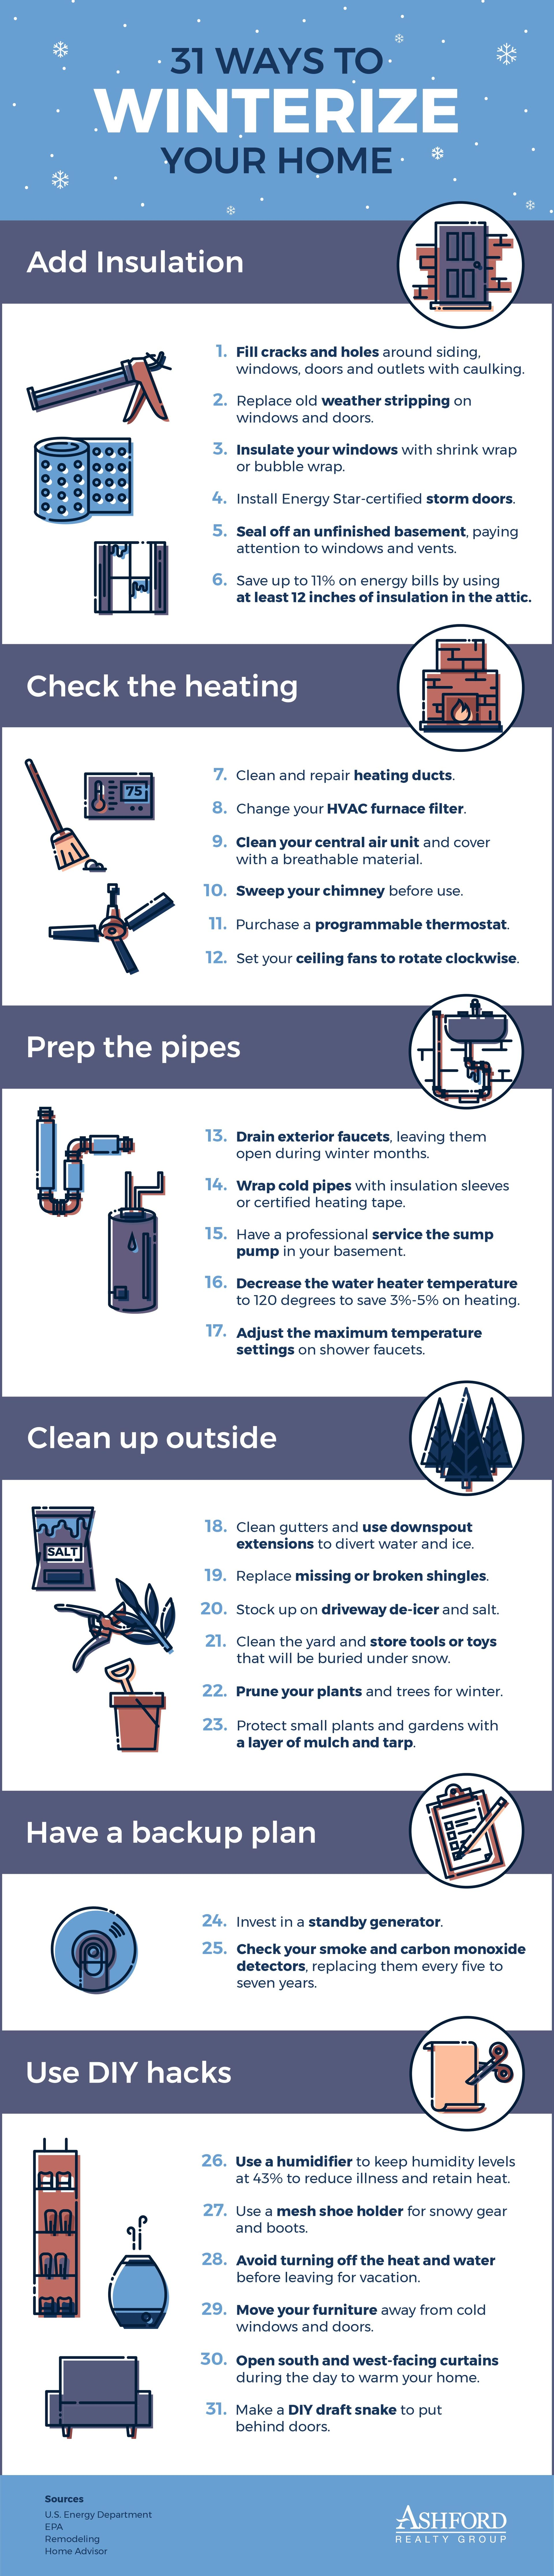 31 Ways to Winterize Your Home